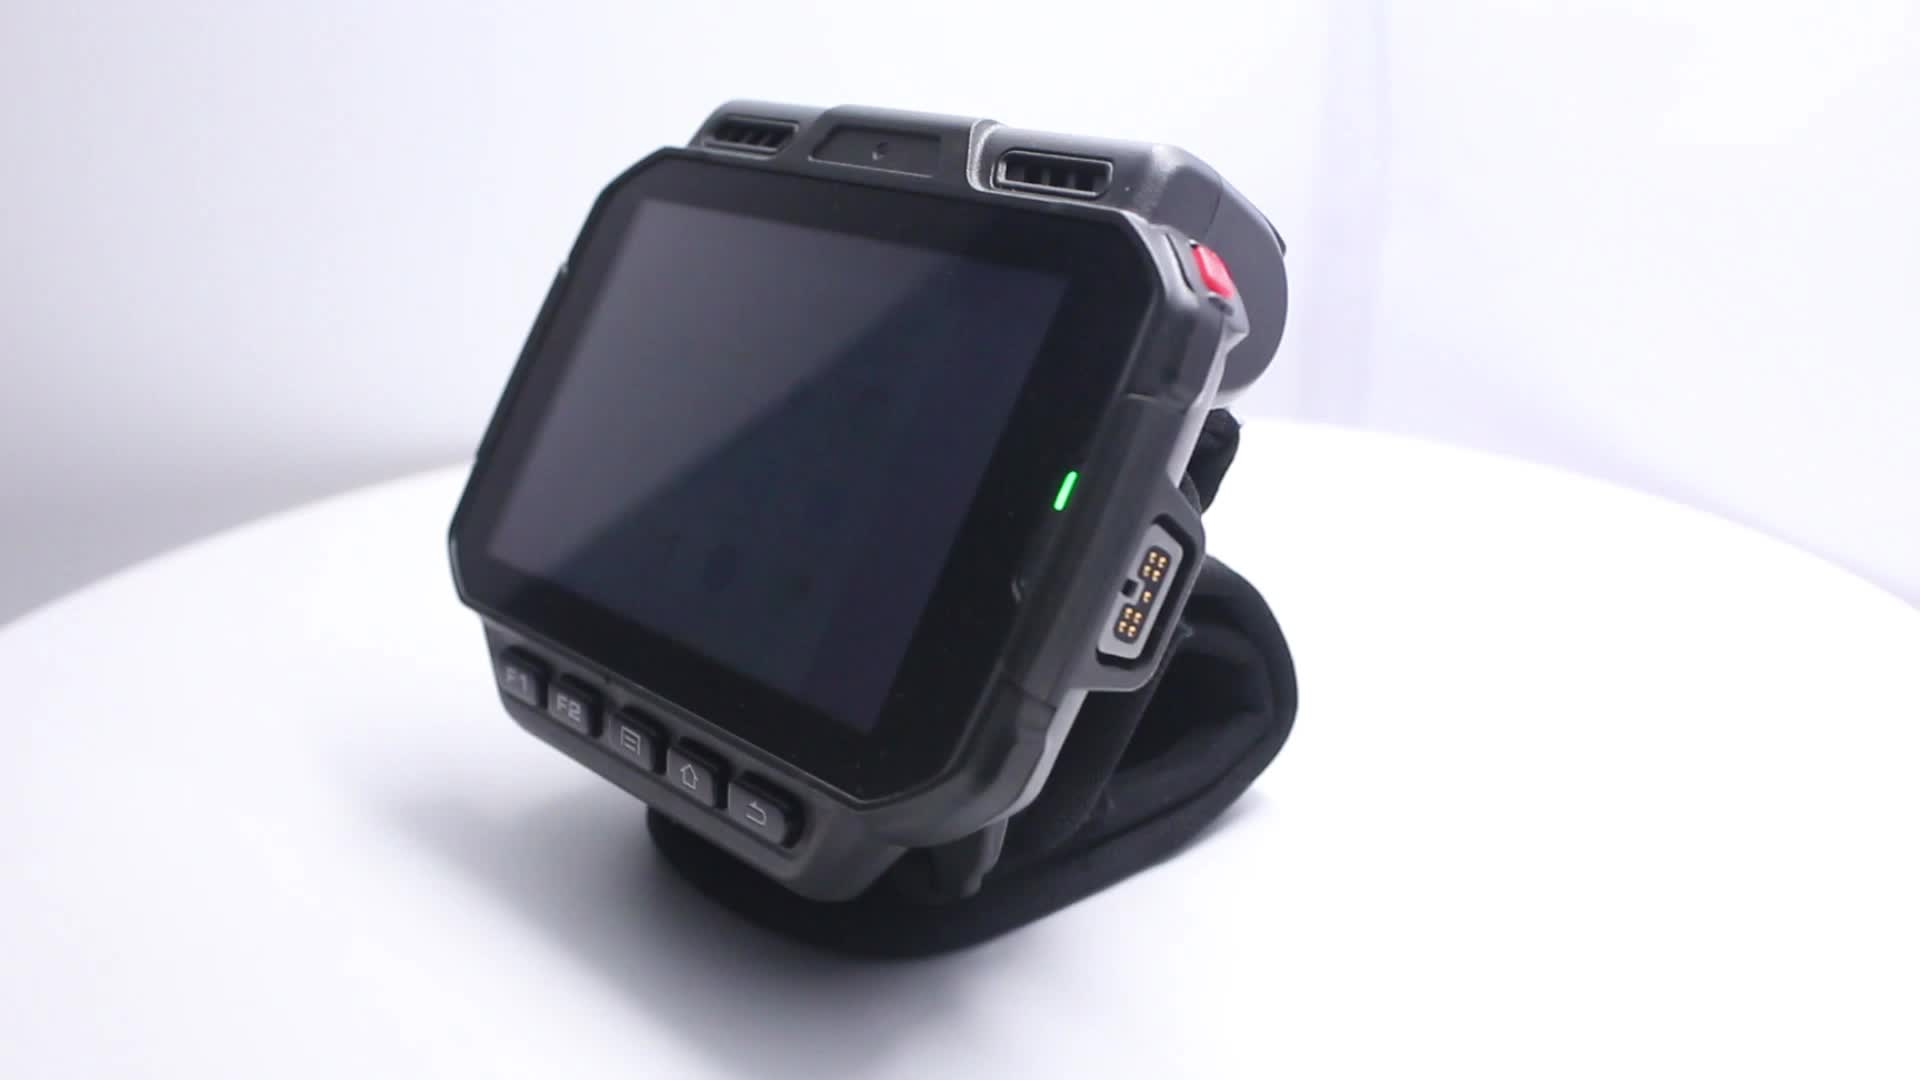 Android 7 1 Wearable Wireless Barcode Scanner Pda With 1d/2d Ring Scanner -  Buy Android Wearable Pda,Android Wearable Barcode Scanner,Android Wearable